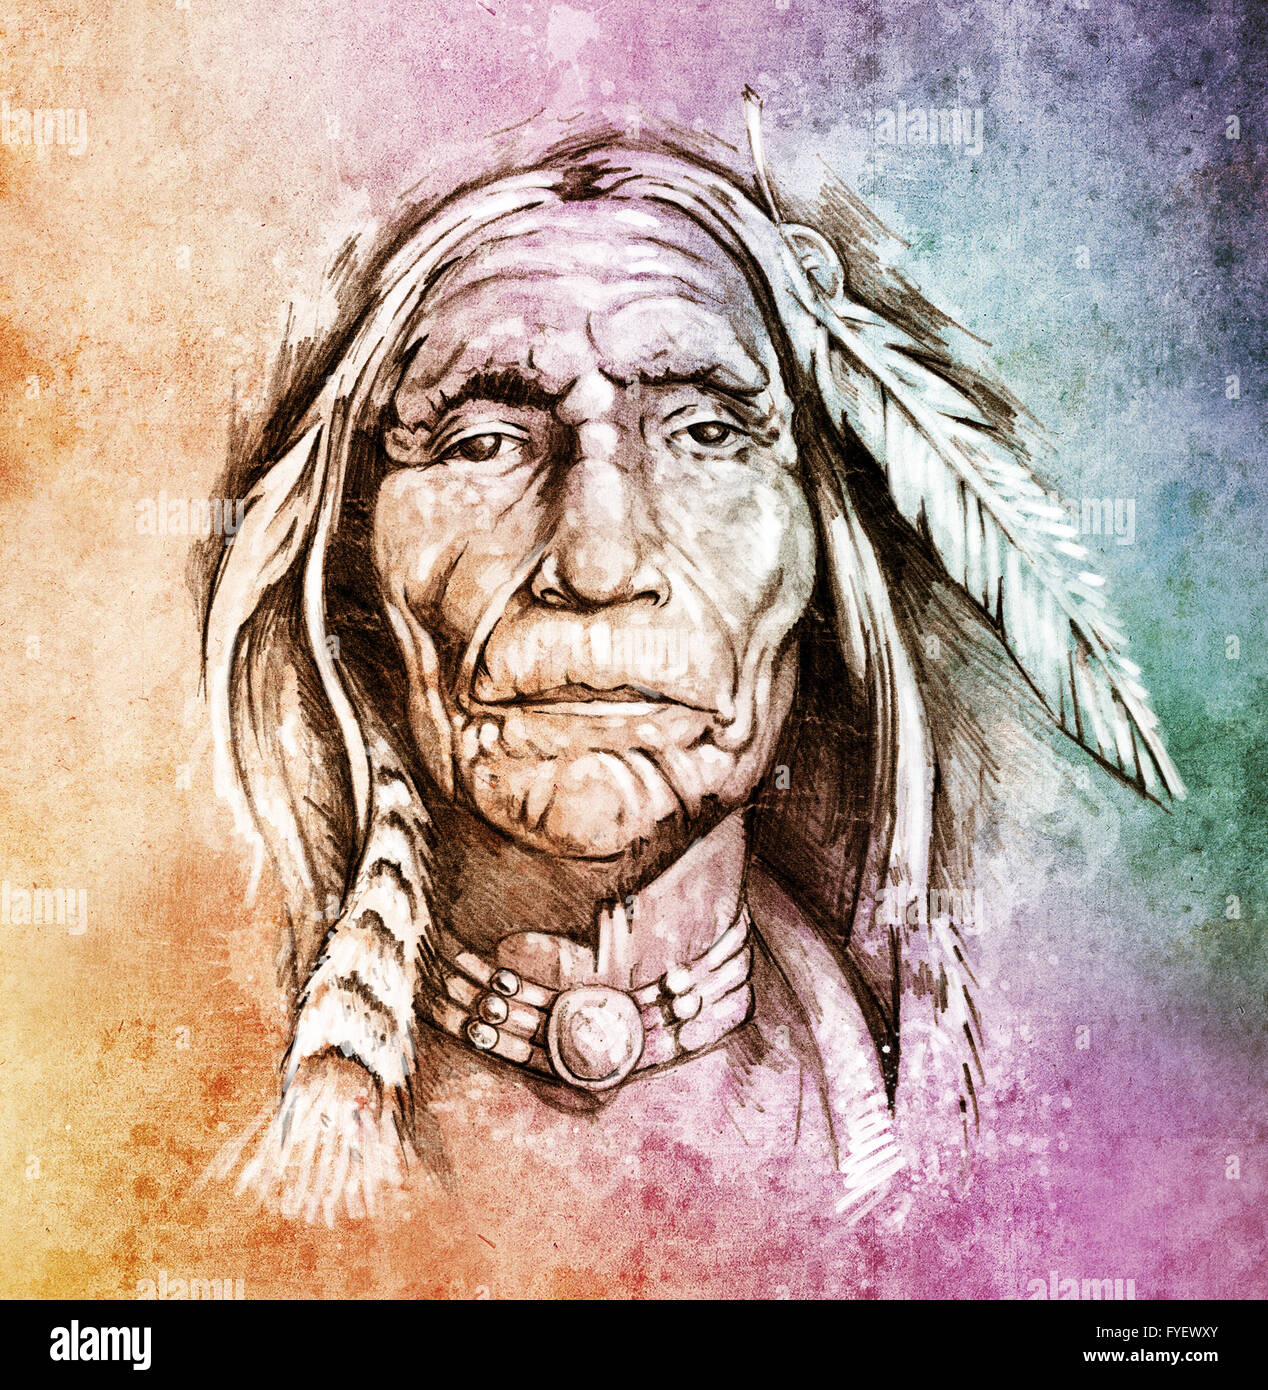 Sketch of tattoo art, portrait of american indian head over colorful paper - Stock Image